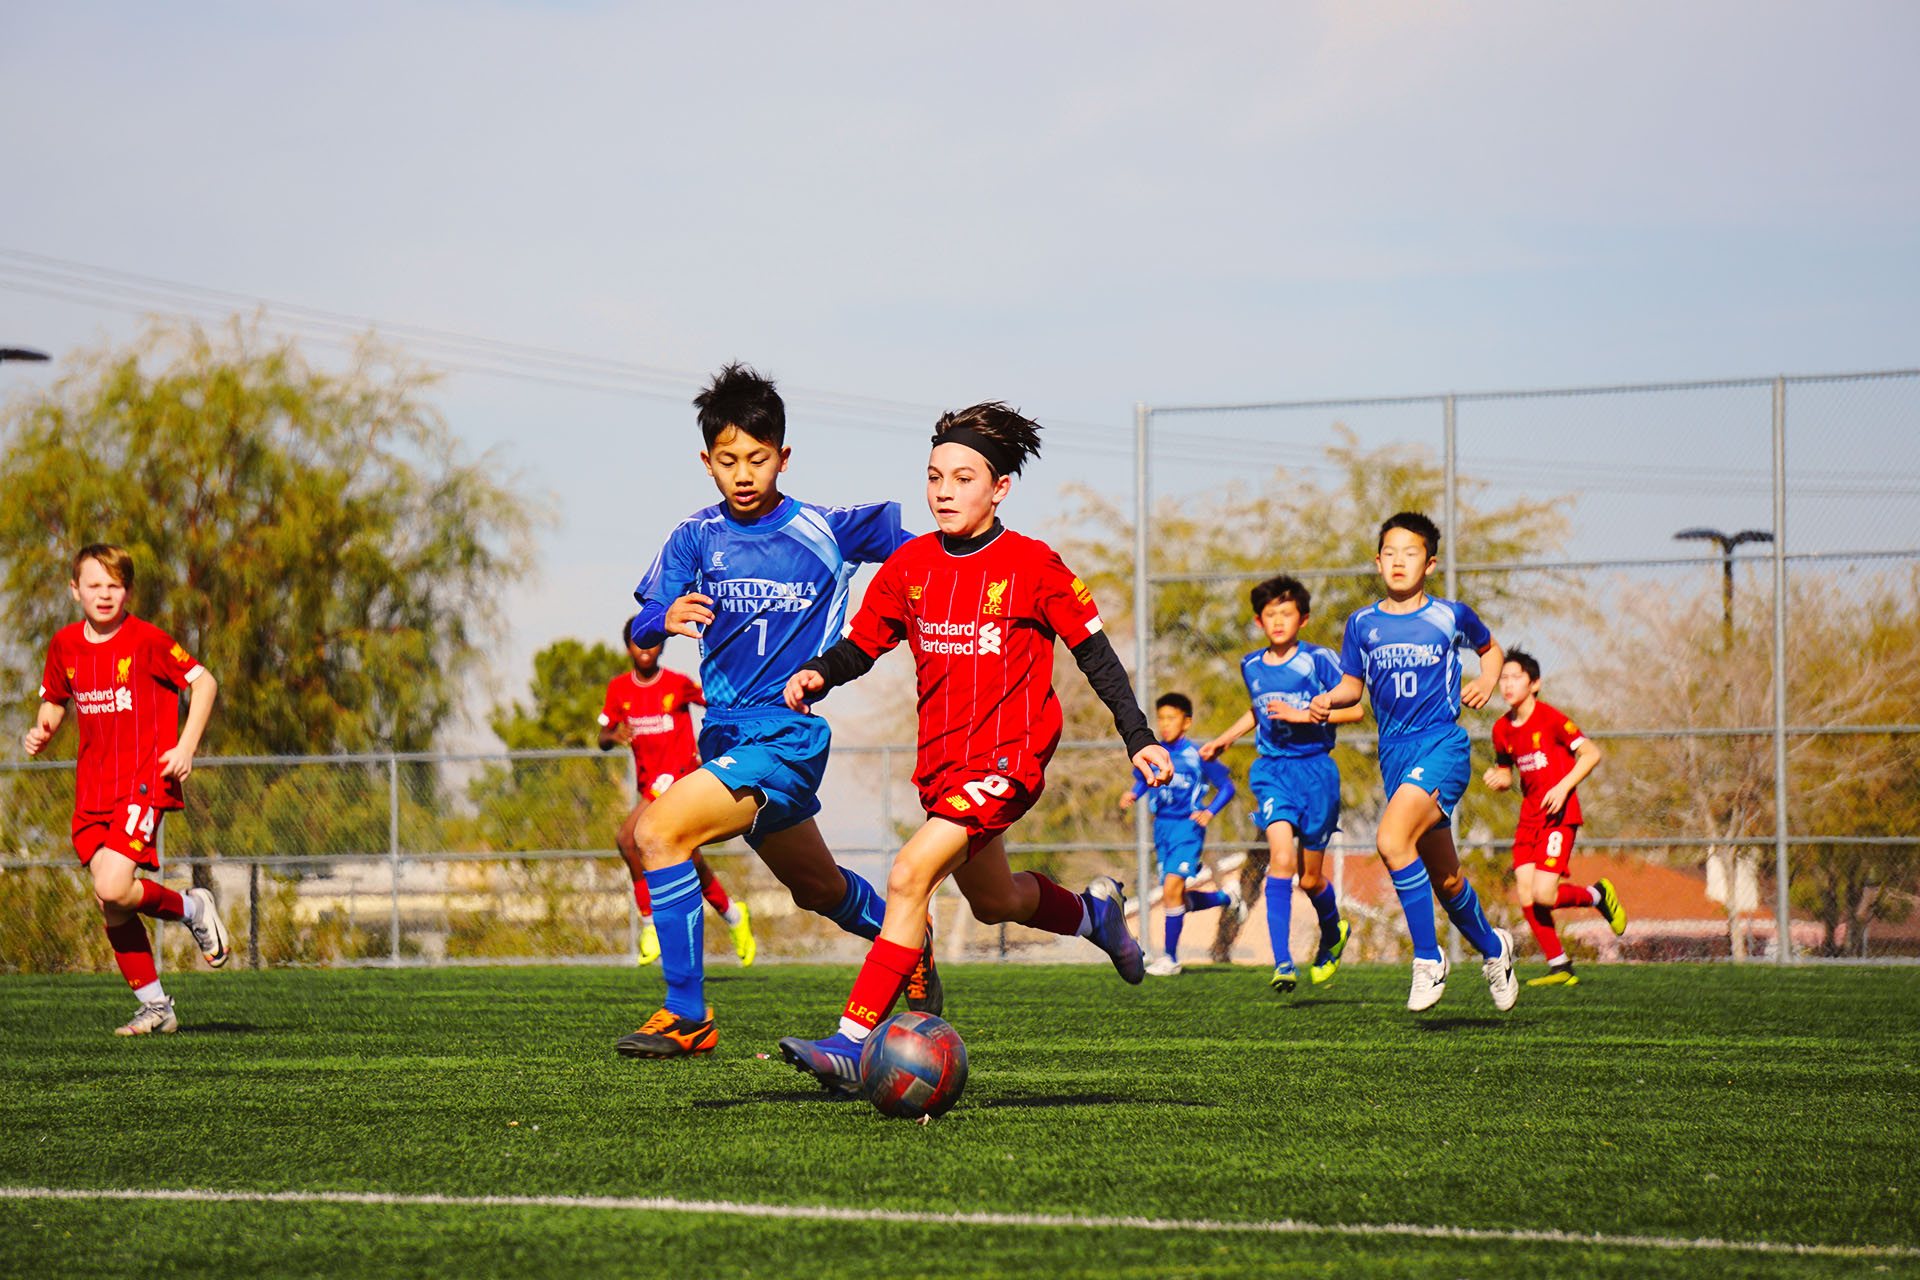 Kids from teams Fukuyama Minami and Liverpool FC compete for the ball during a football match in BA Cup 2020 in Las Vegas, Nevada